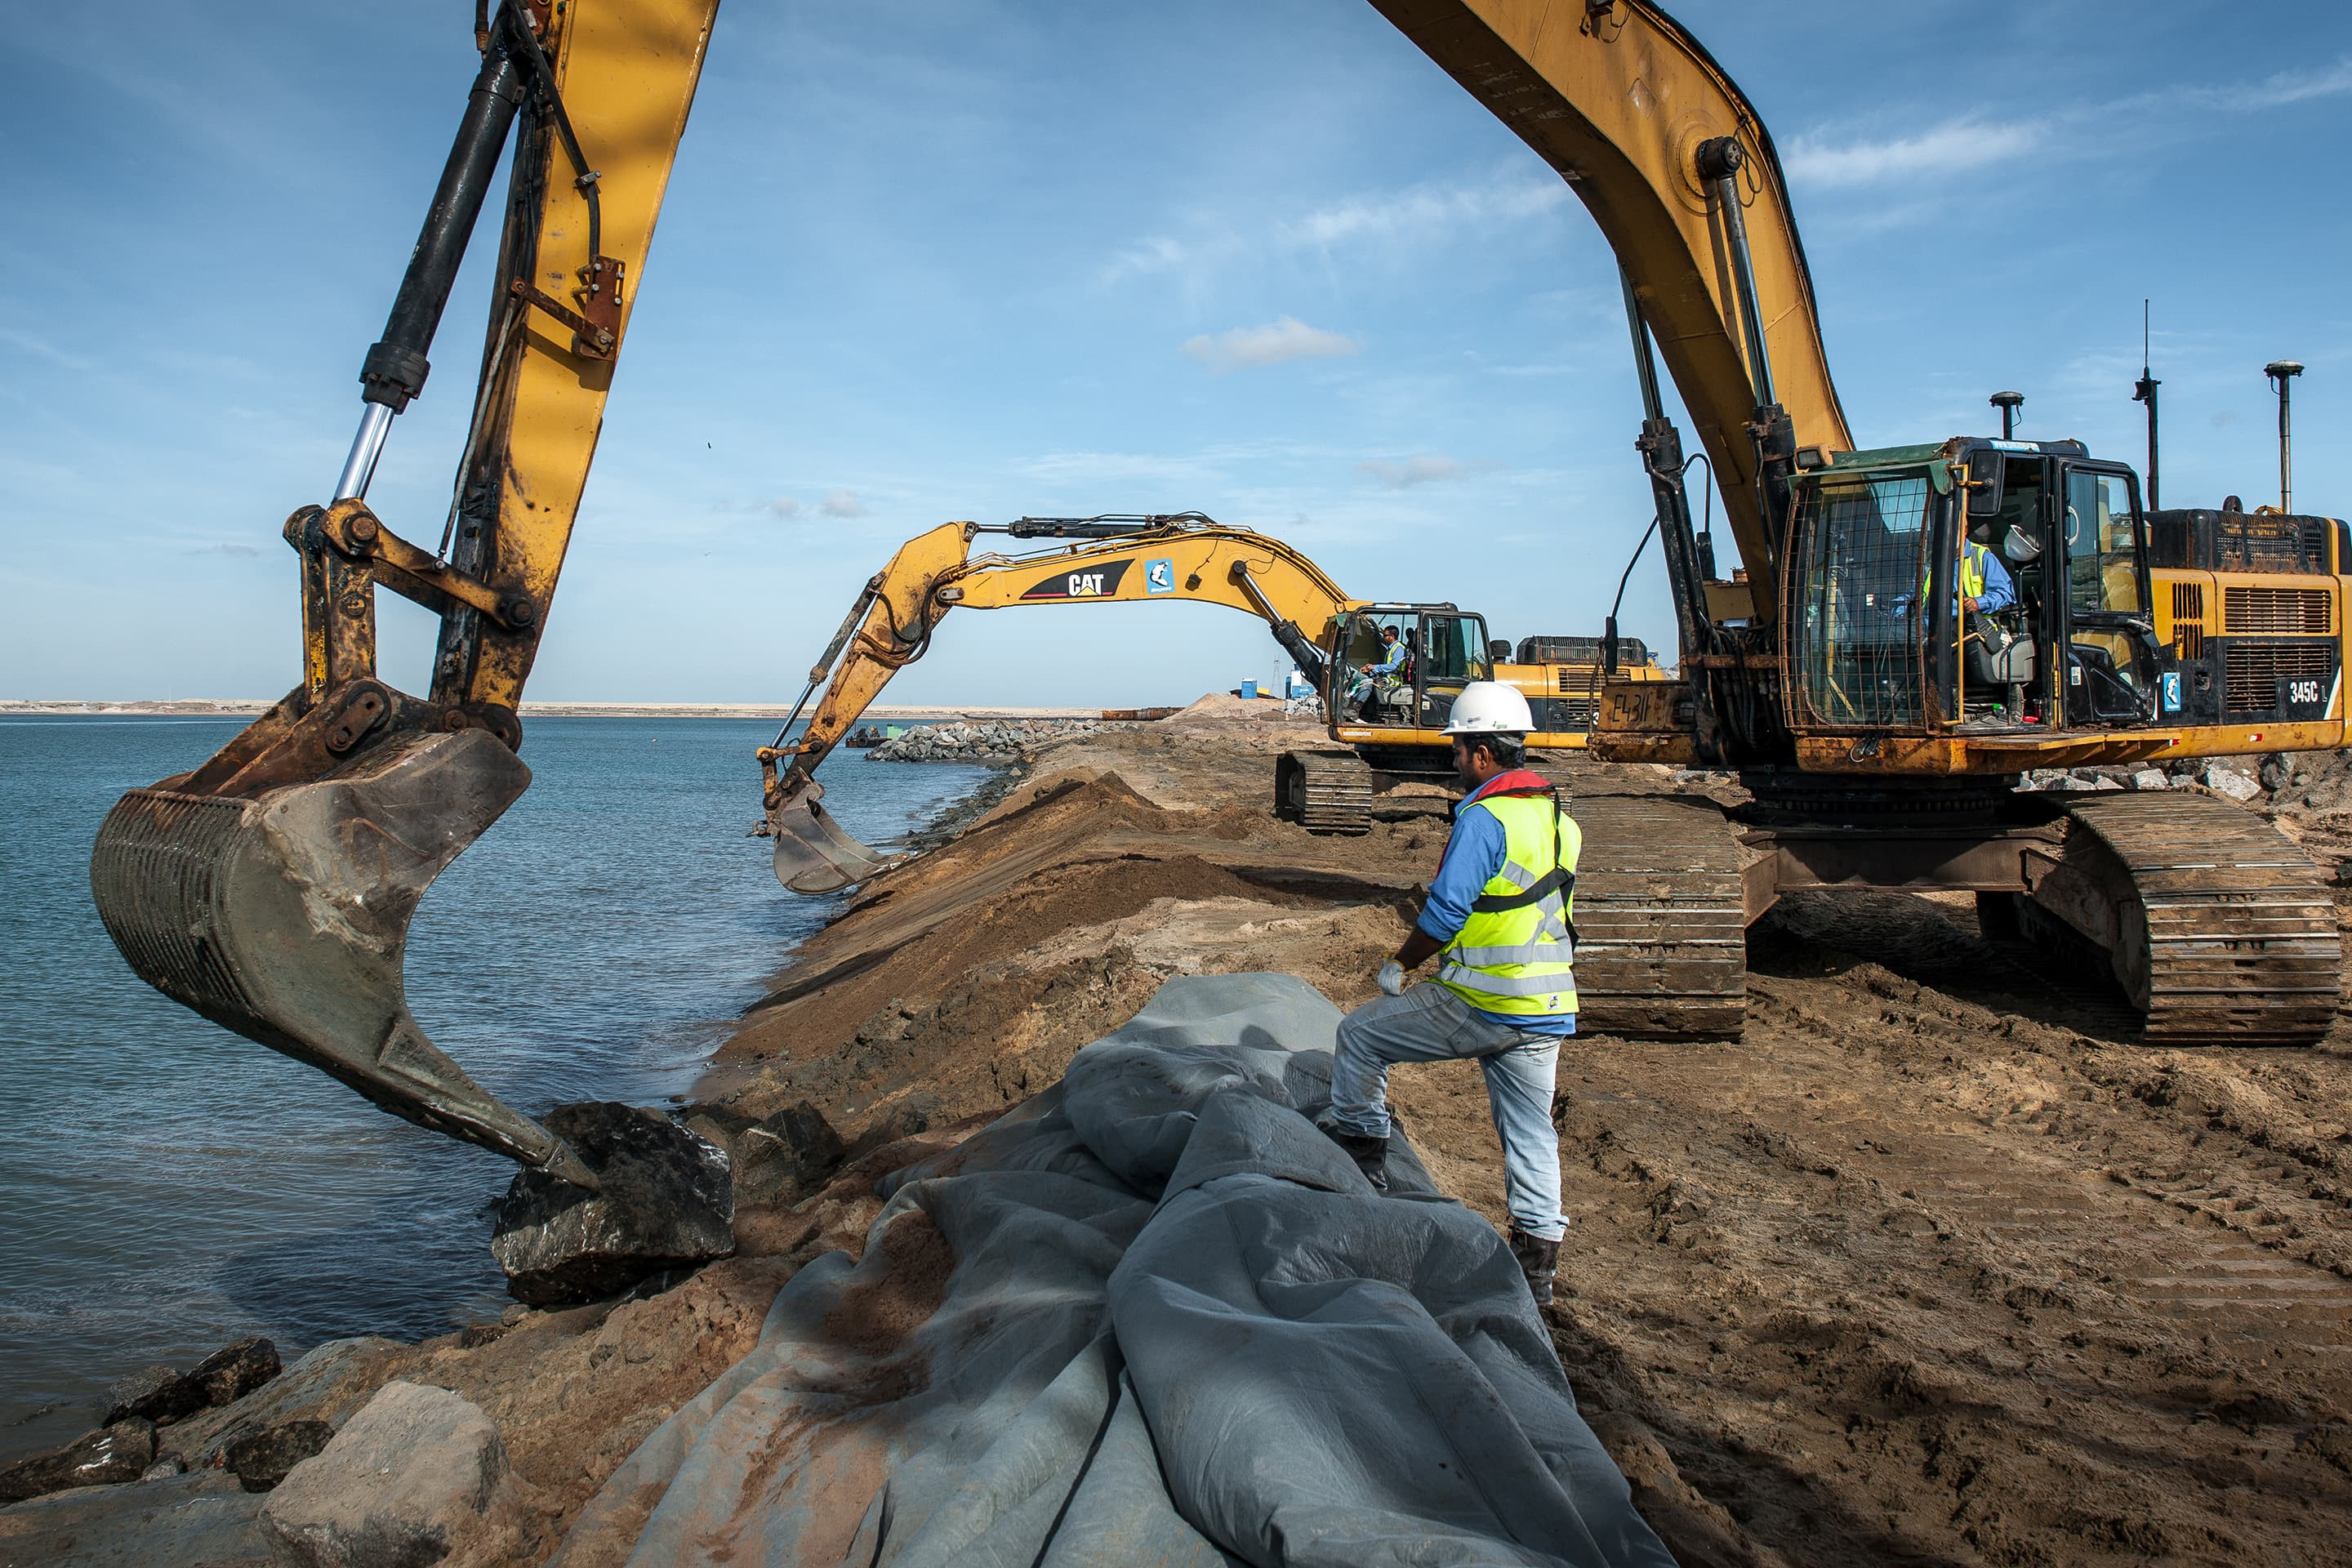 Installation of geotextile to protect a breakwater against erosion